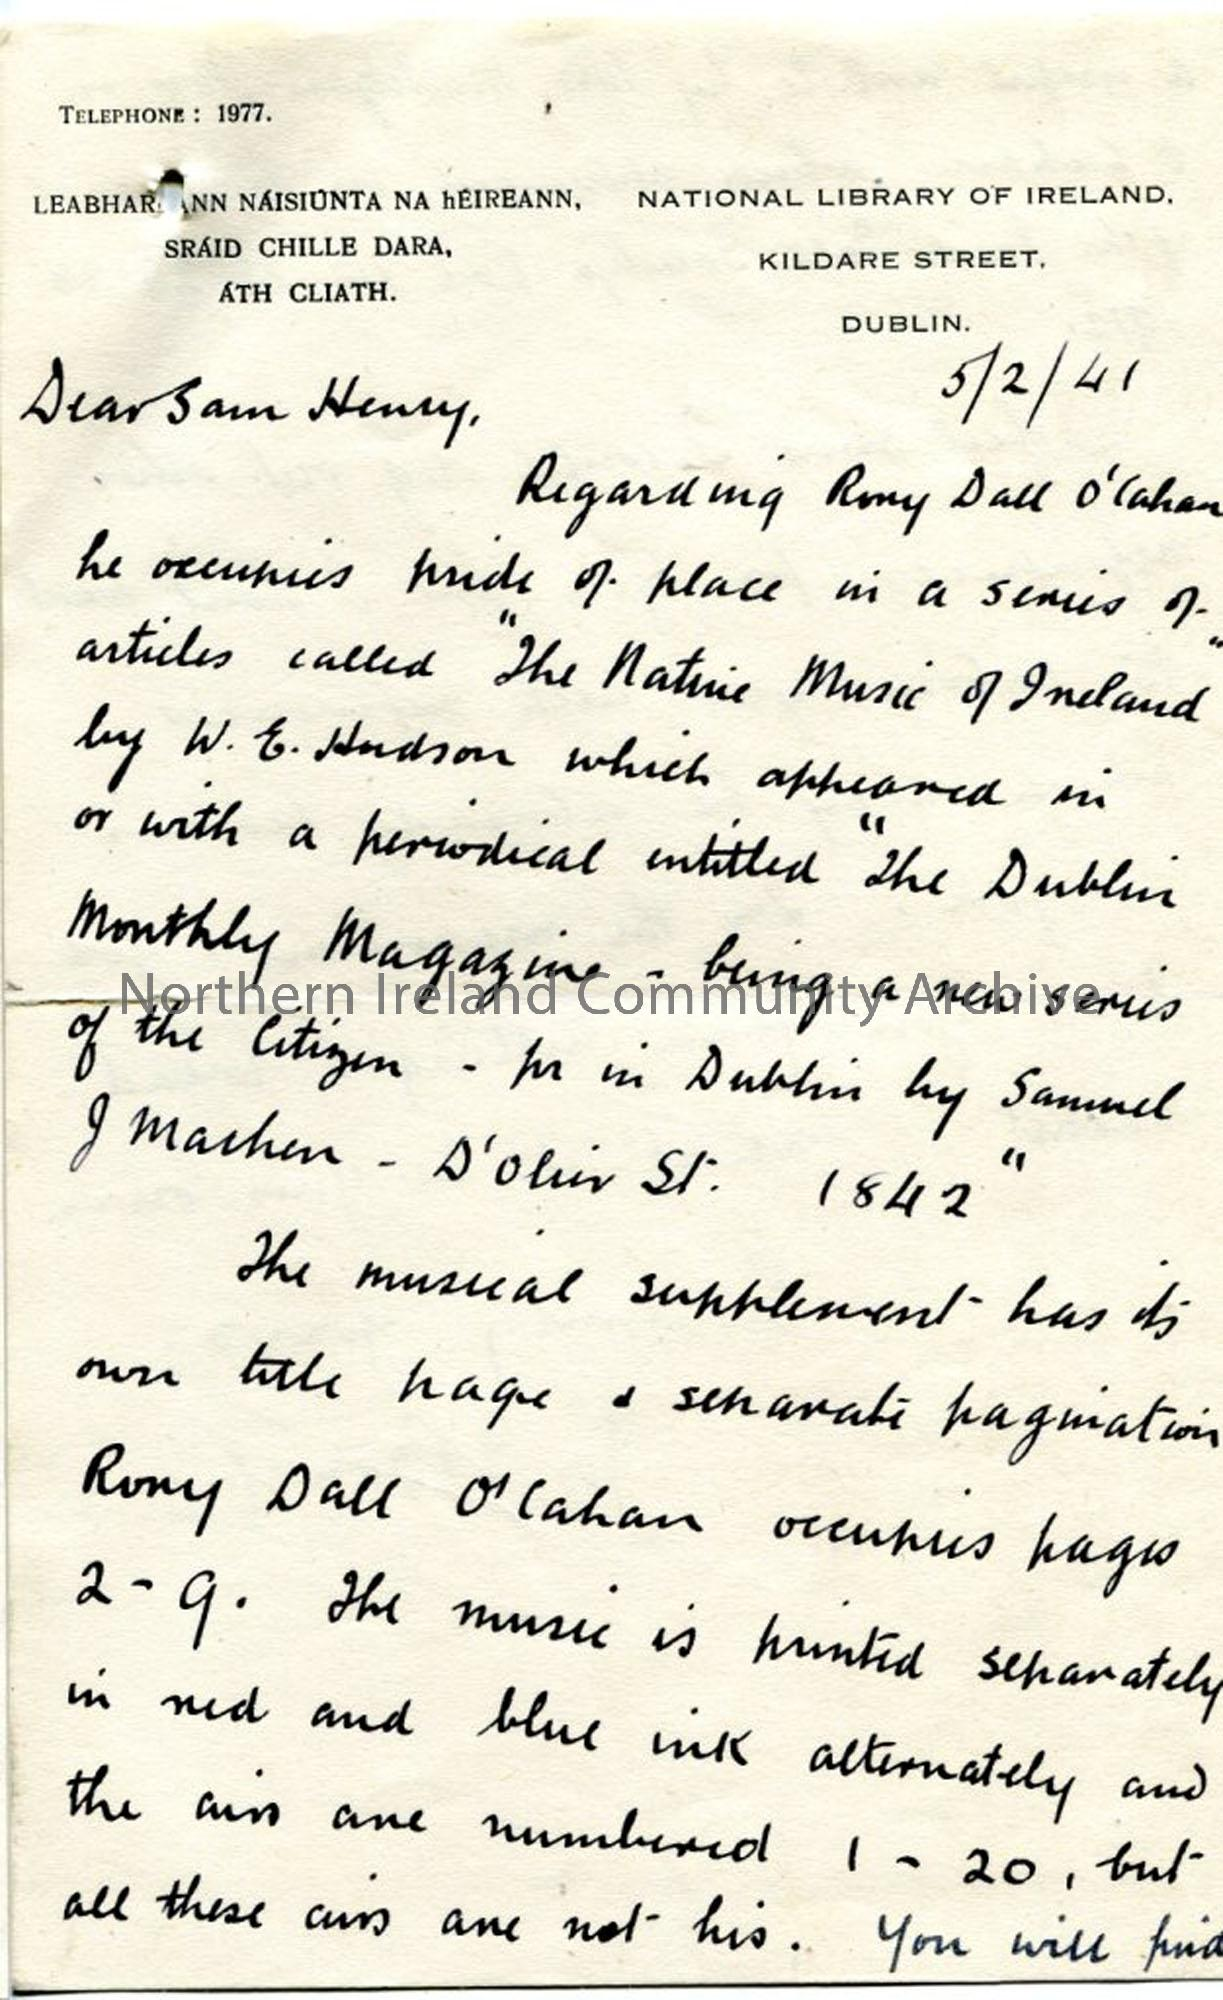 Page one: letter from JJ Bonch of National Library of Ireland, dated  5.2.1941.